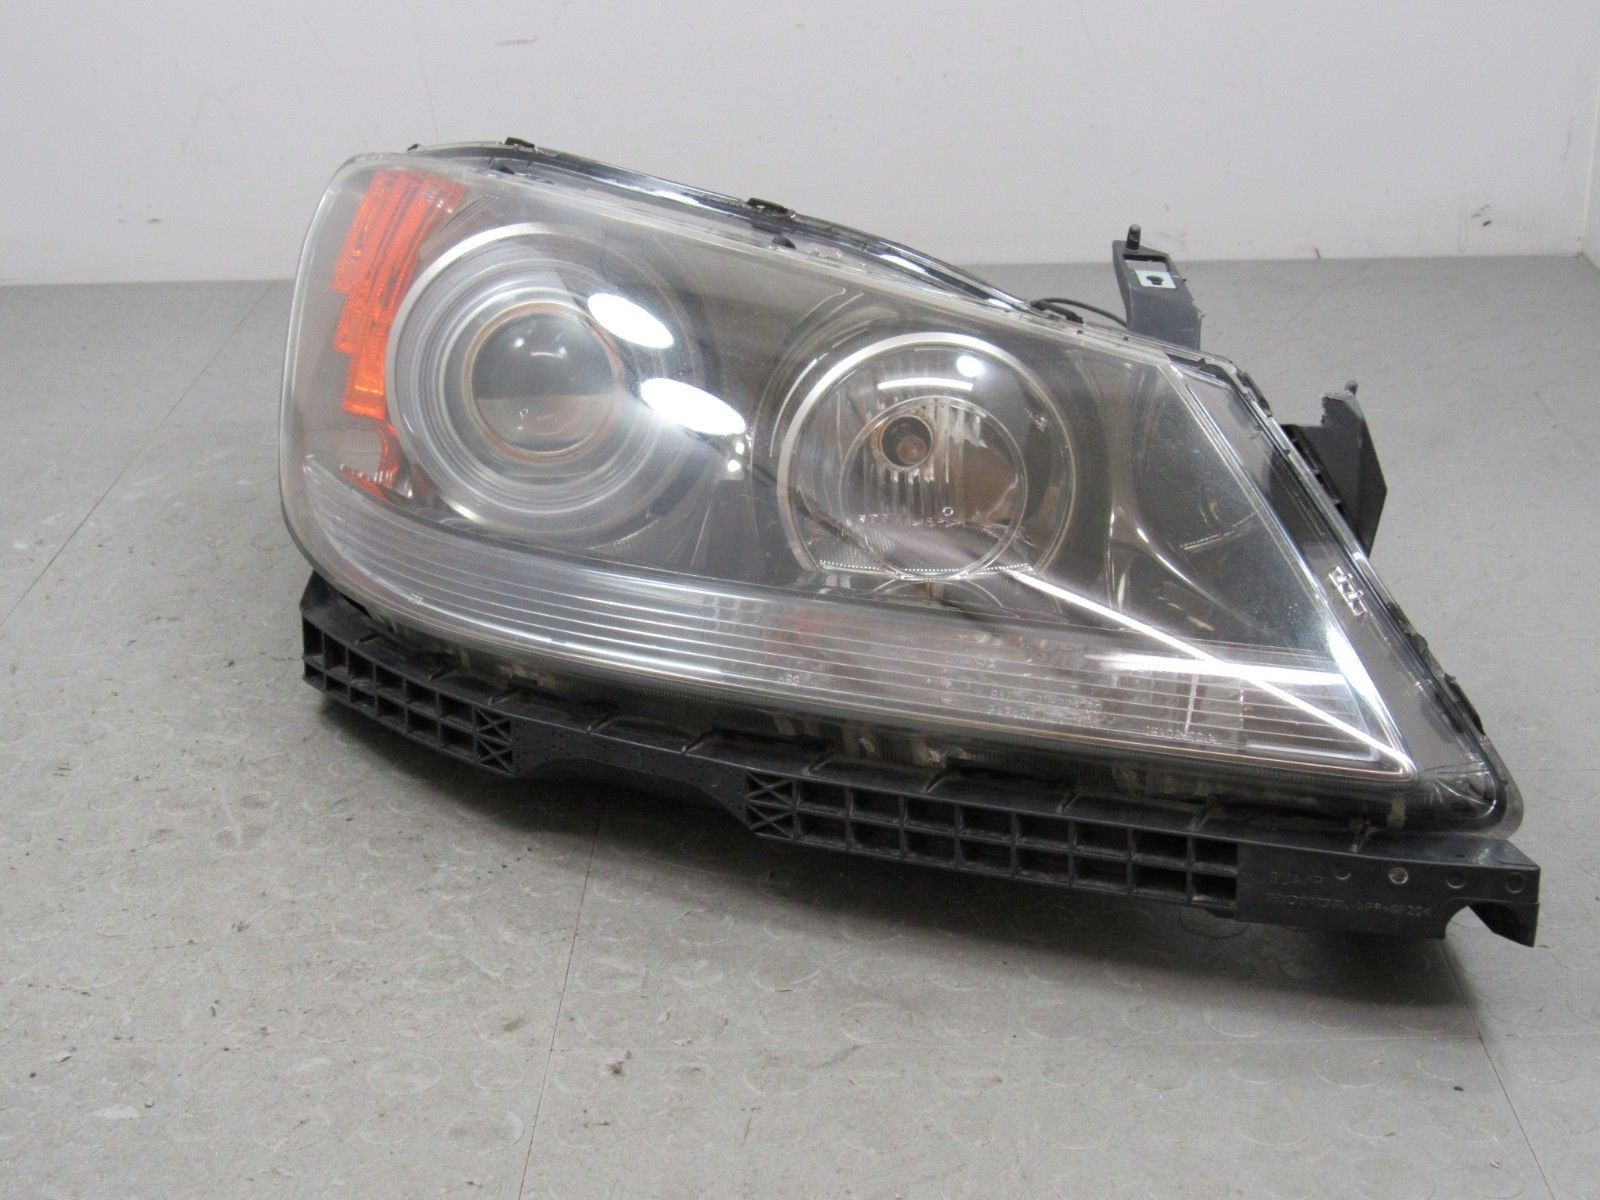 Acura RL Right RH Passenger Side Xenon HID Headlight Head - 2006 acura rl headlight replacement